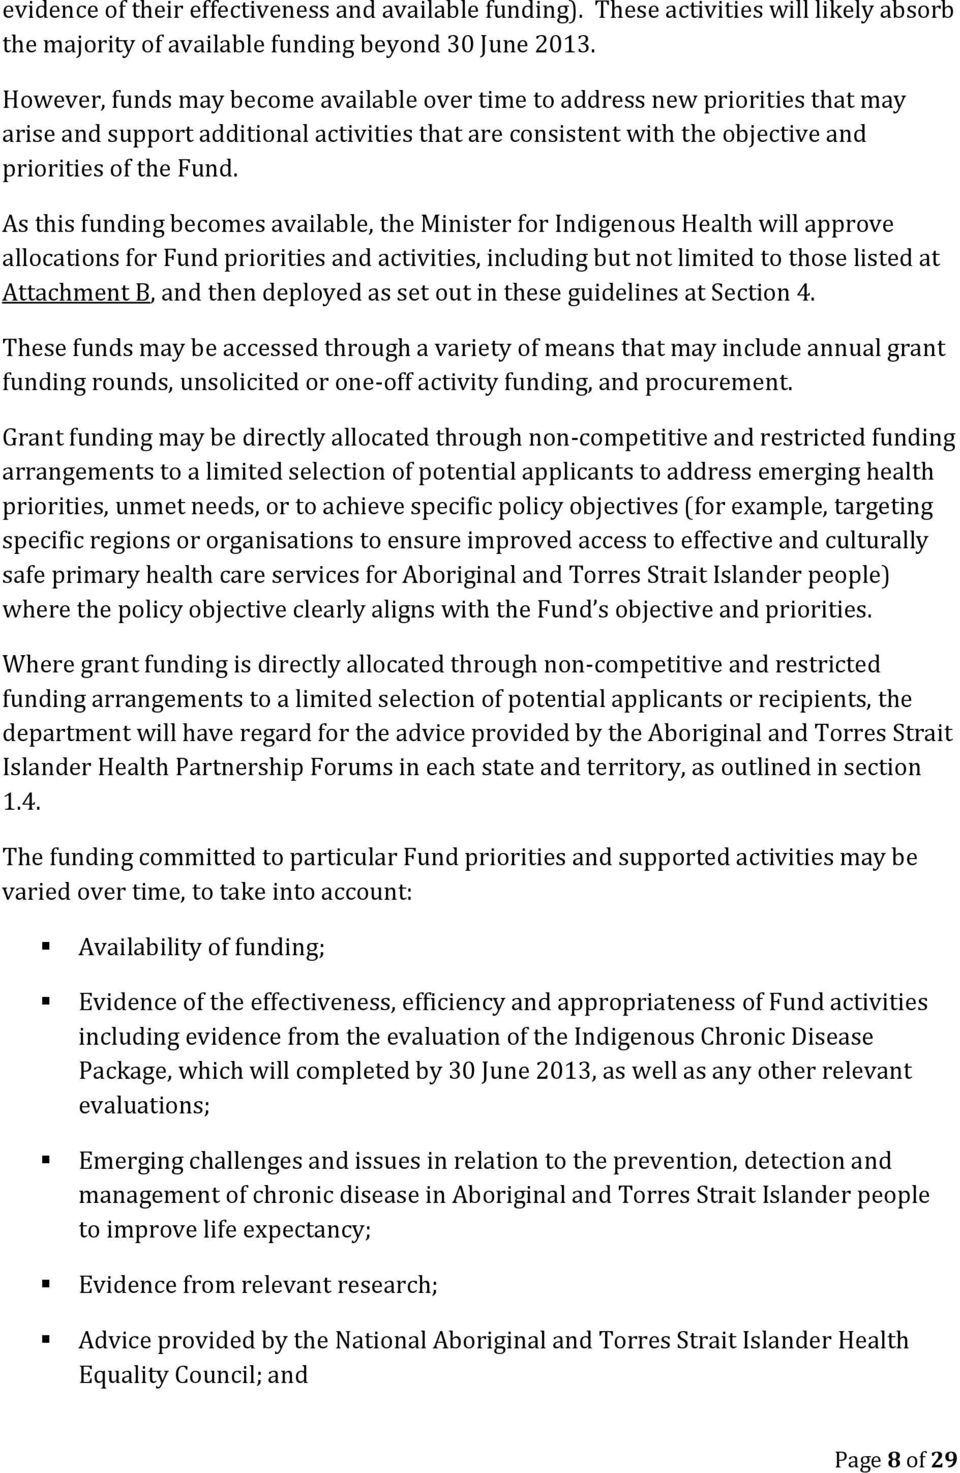 As this funding becomes available, the Minister for Indigenous Health will approve allocations for Fund priorities and activities, including but not limited to those listed at Attachment B, and then